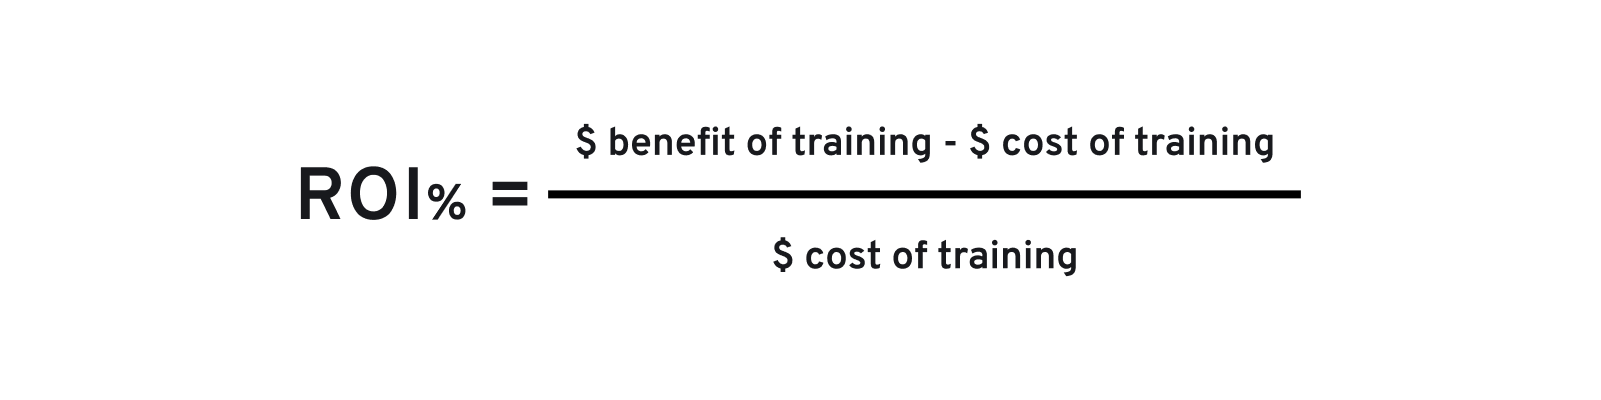 training ROI formula